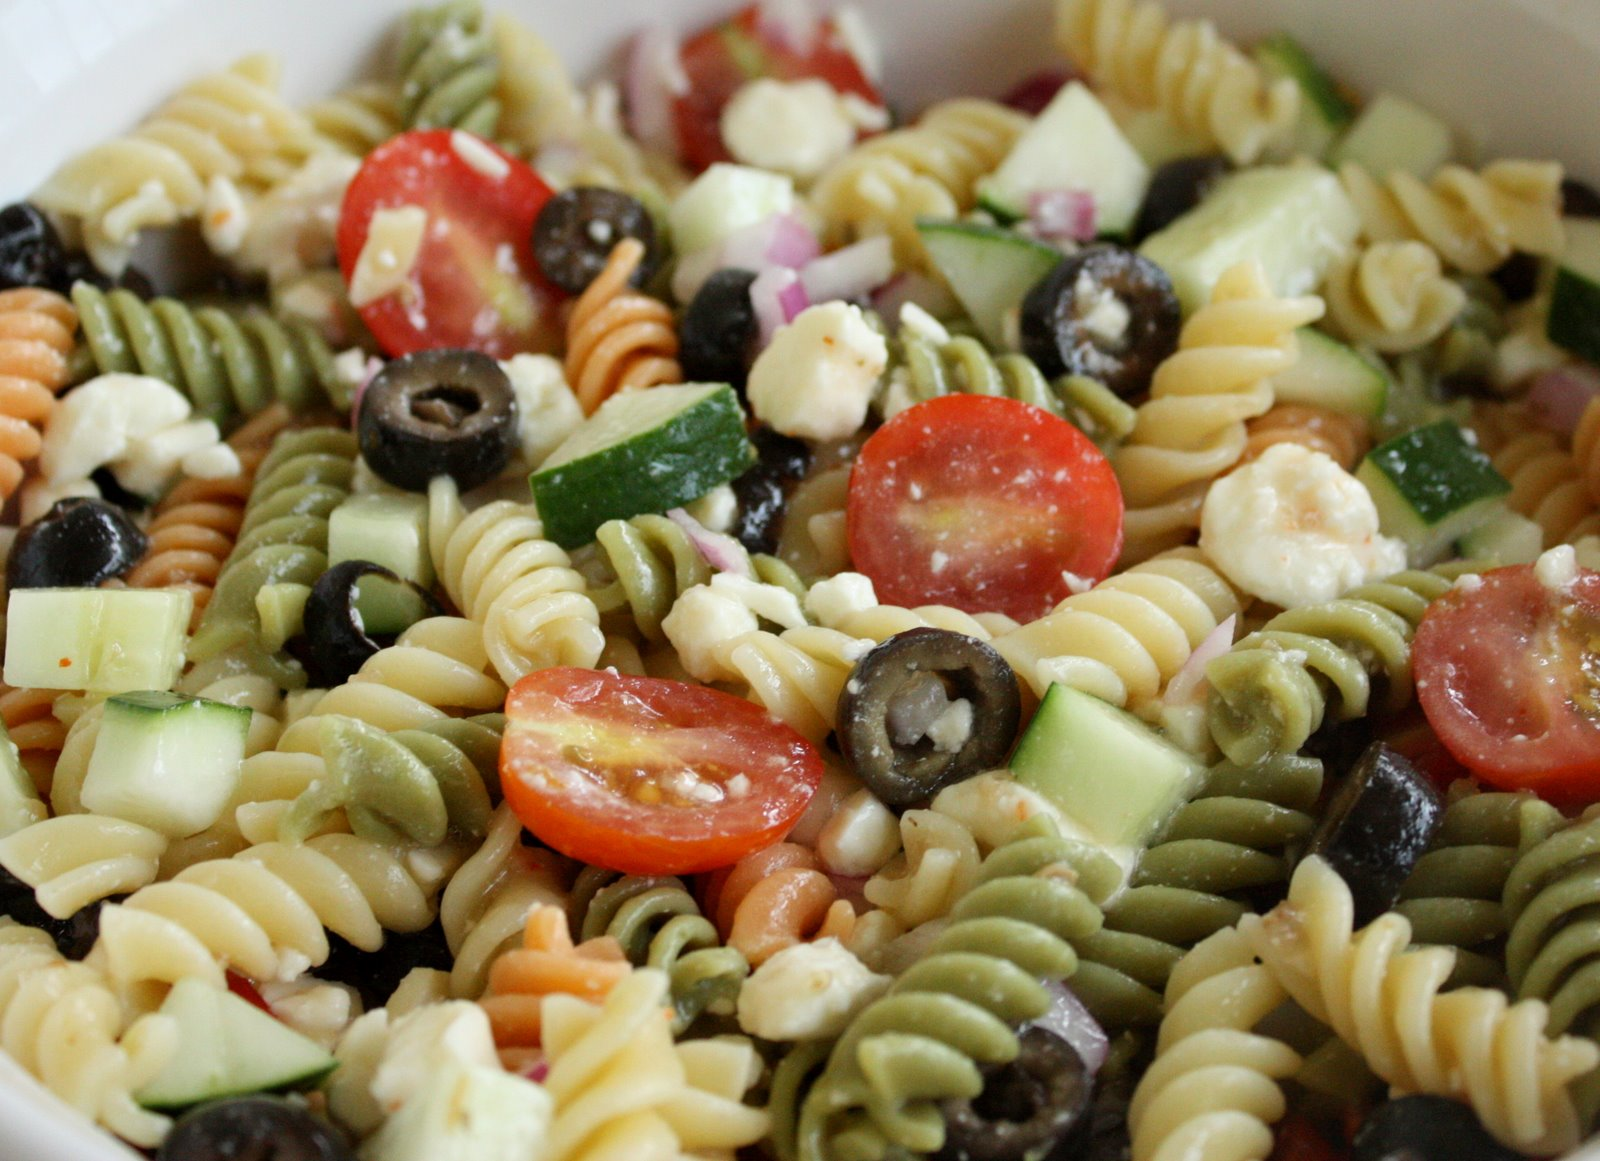 Feta and vegetable rotini salad the girl who ate everything Pasta salad recipe cold